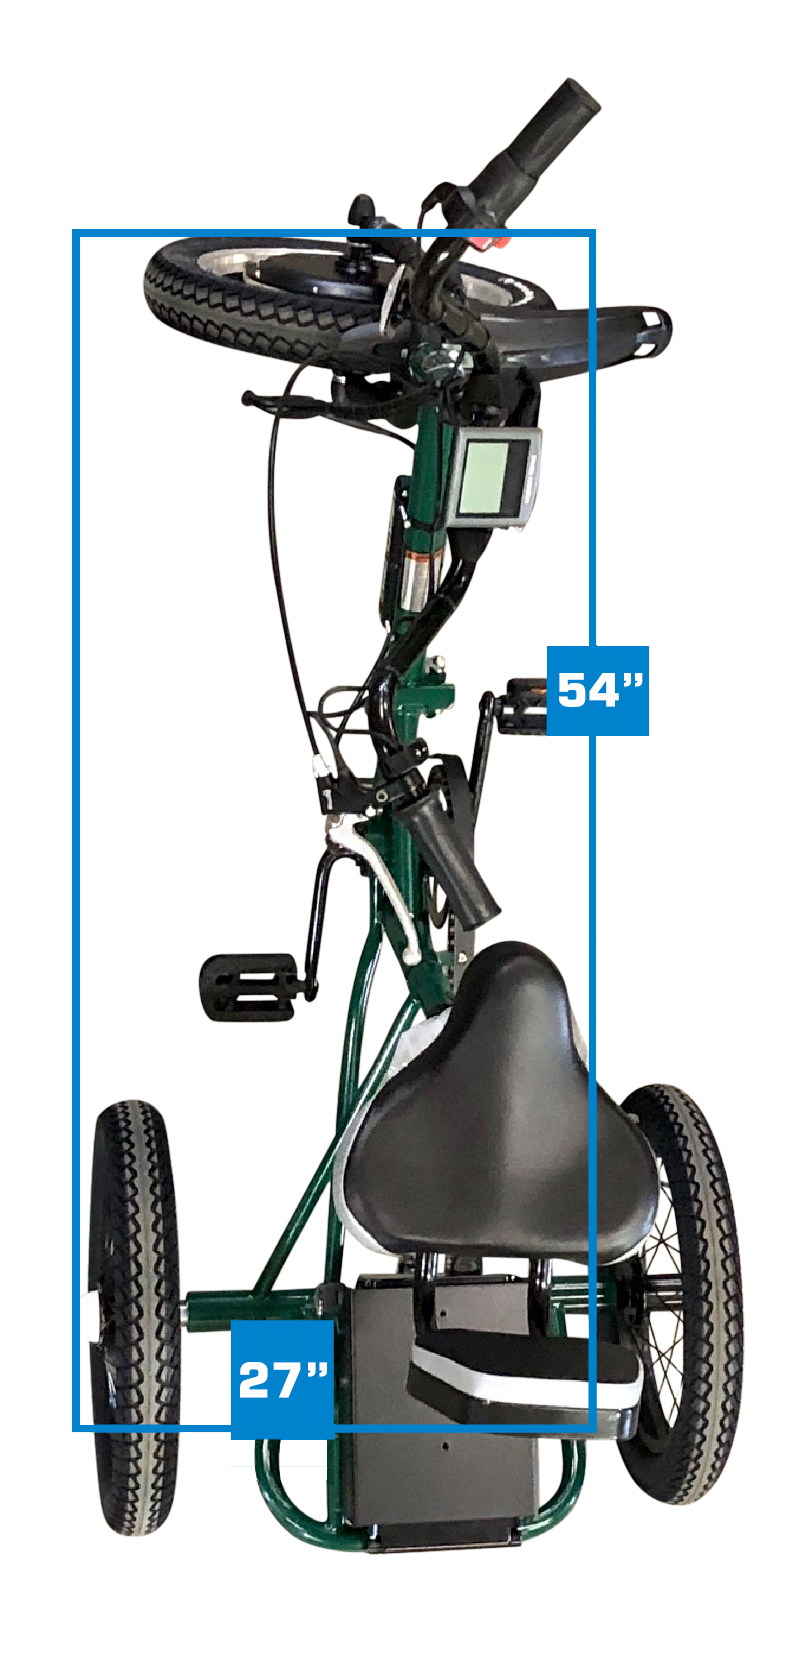 Liberty Trike's overall length and width